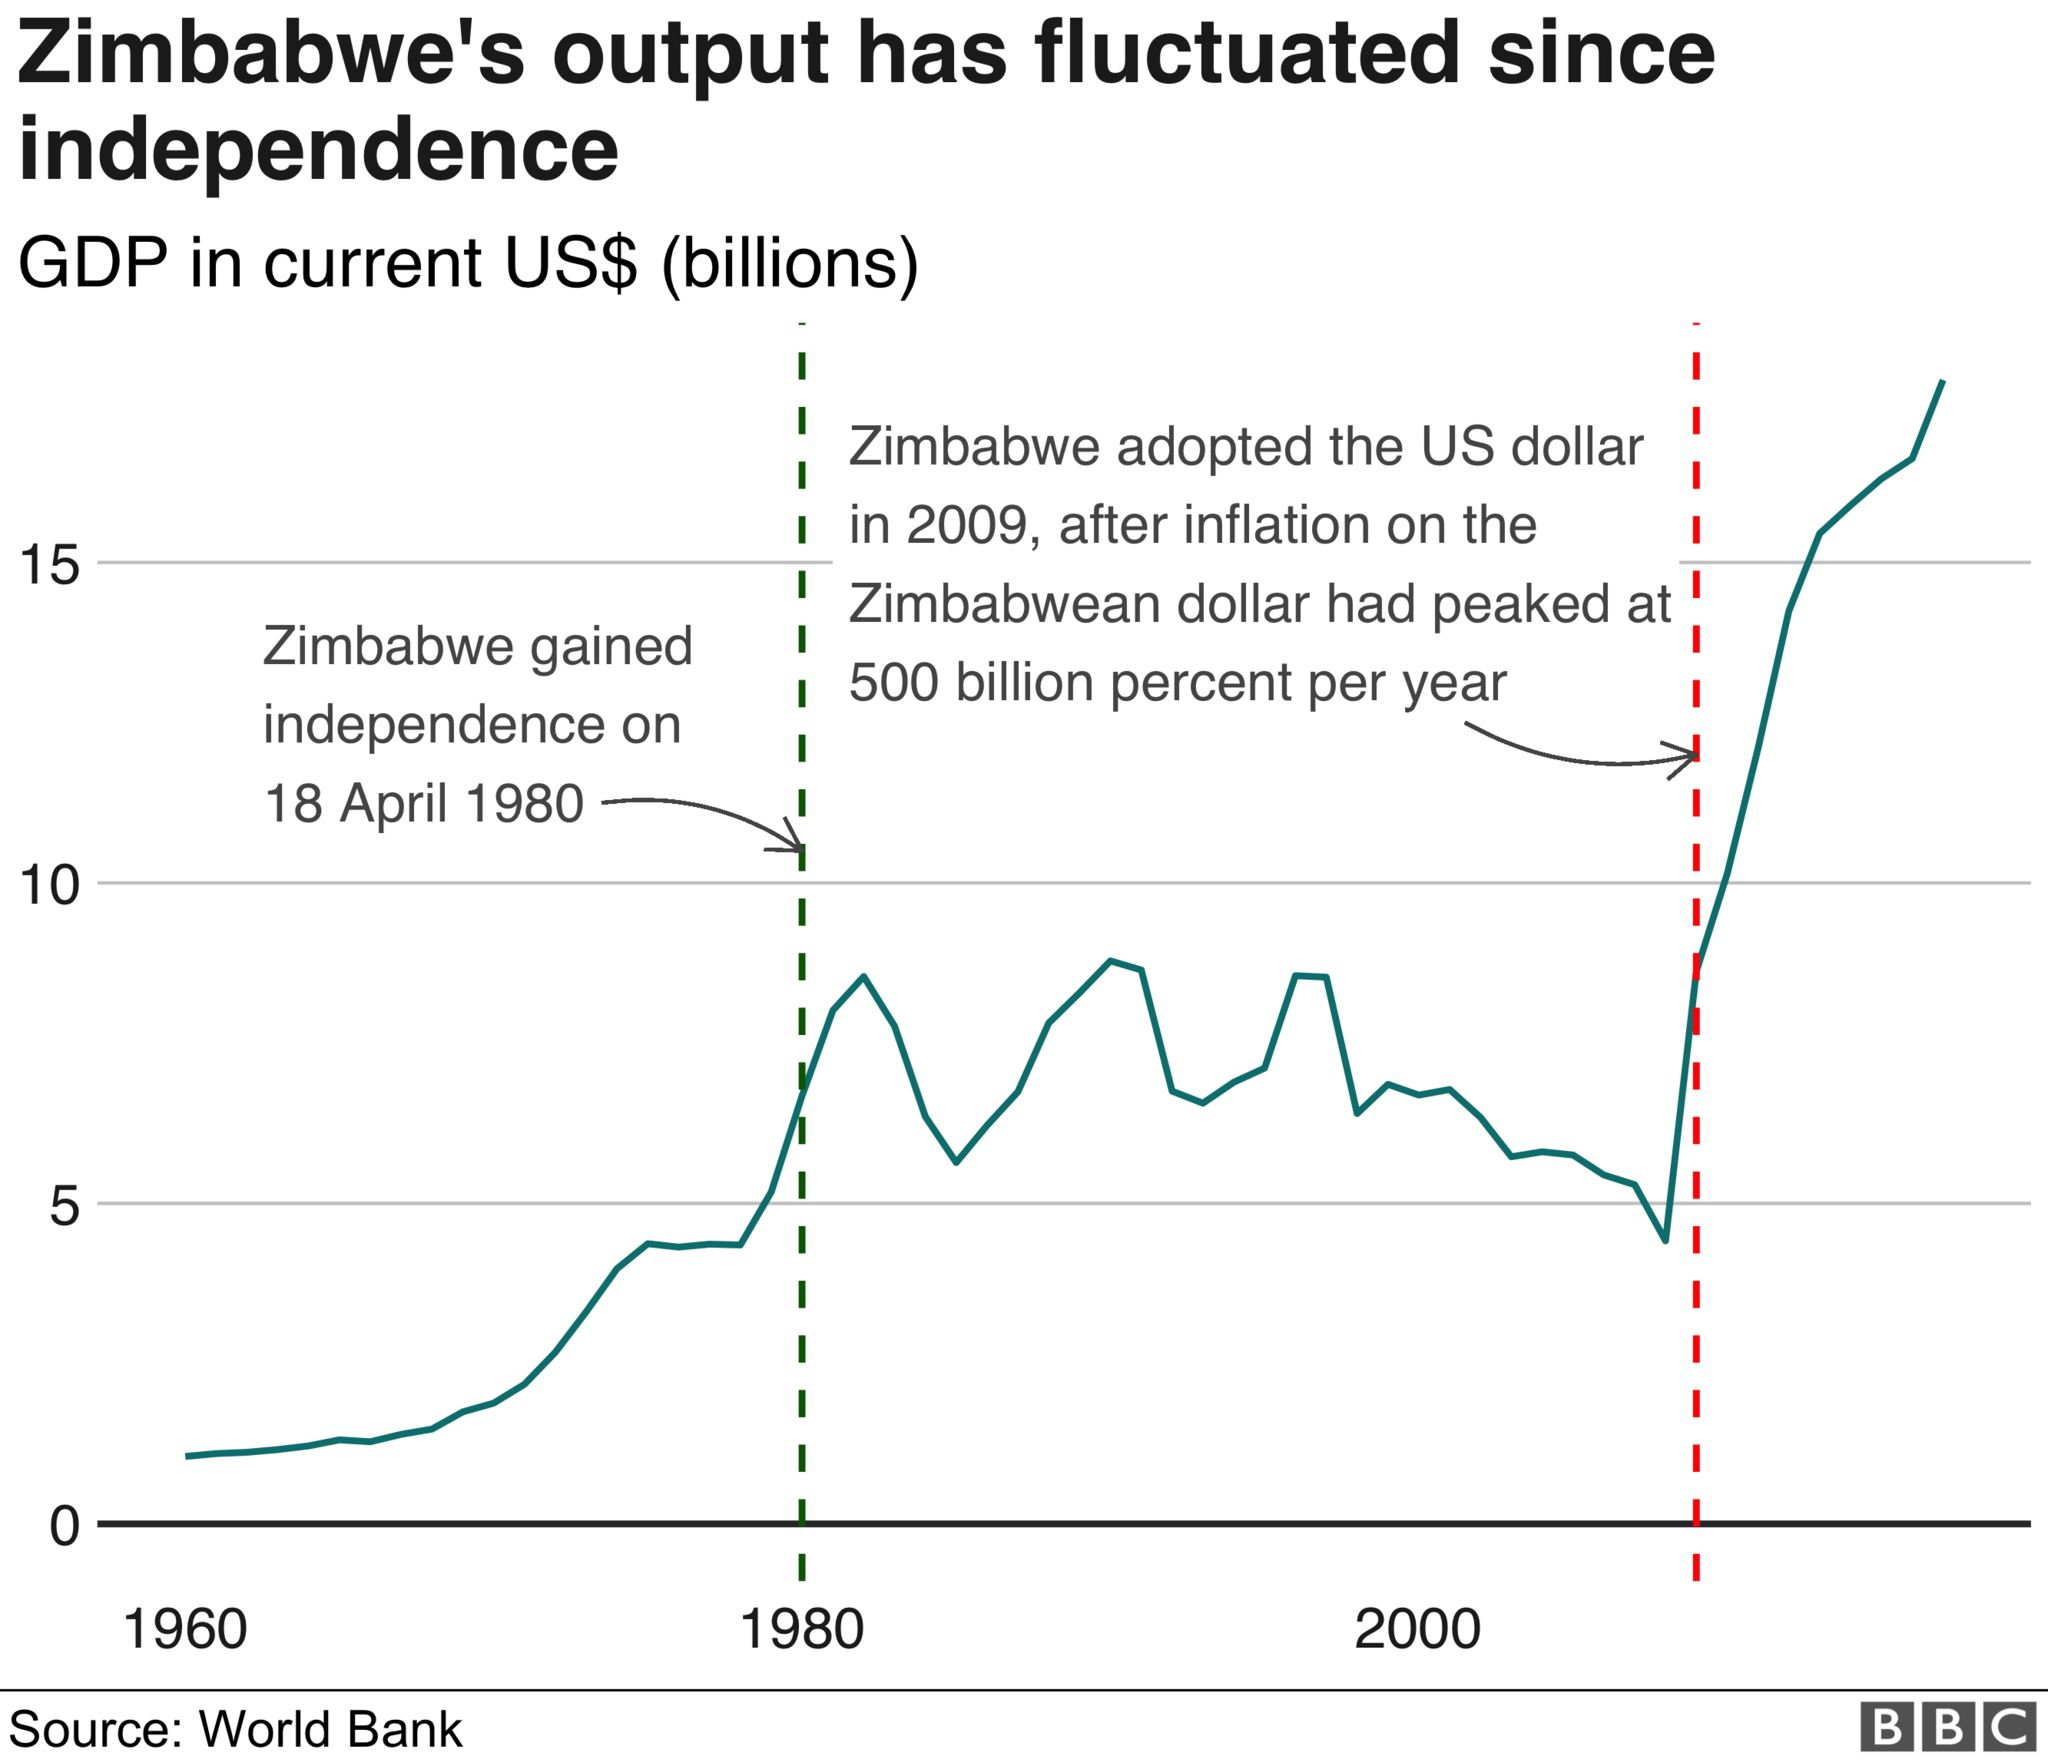 Chart showing how Zimbabwe's GDP fluctuating in the first thirty years after gaining independence in 1980, but has risen consistently since adopting the US dollar as its official currency in 2009